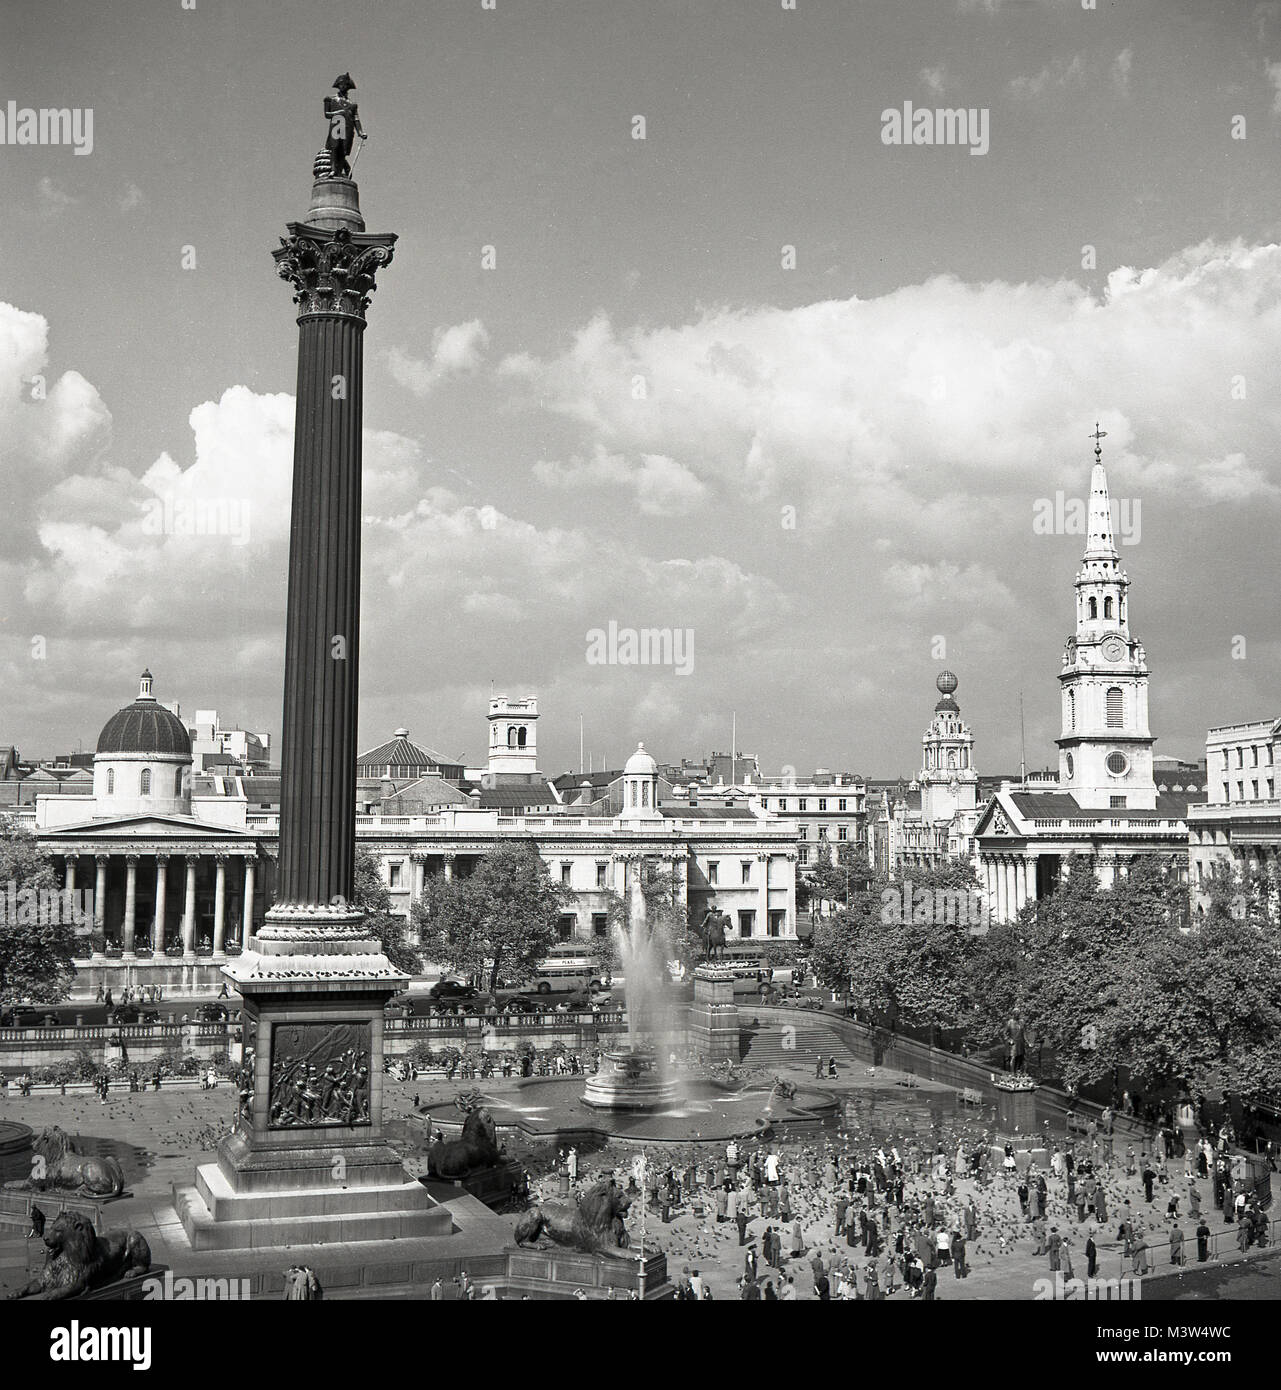 1950s, historical, in this picture from the early 1950s by J Allan Cash we see a view of the Central London public Stock Photo